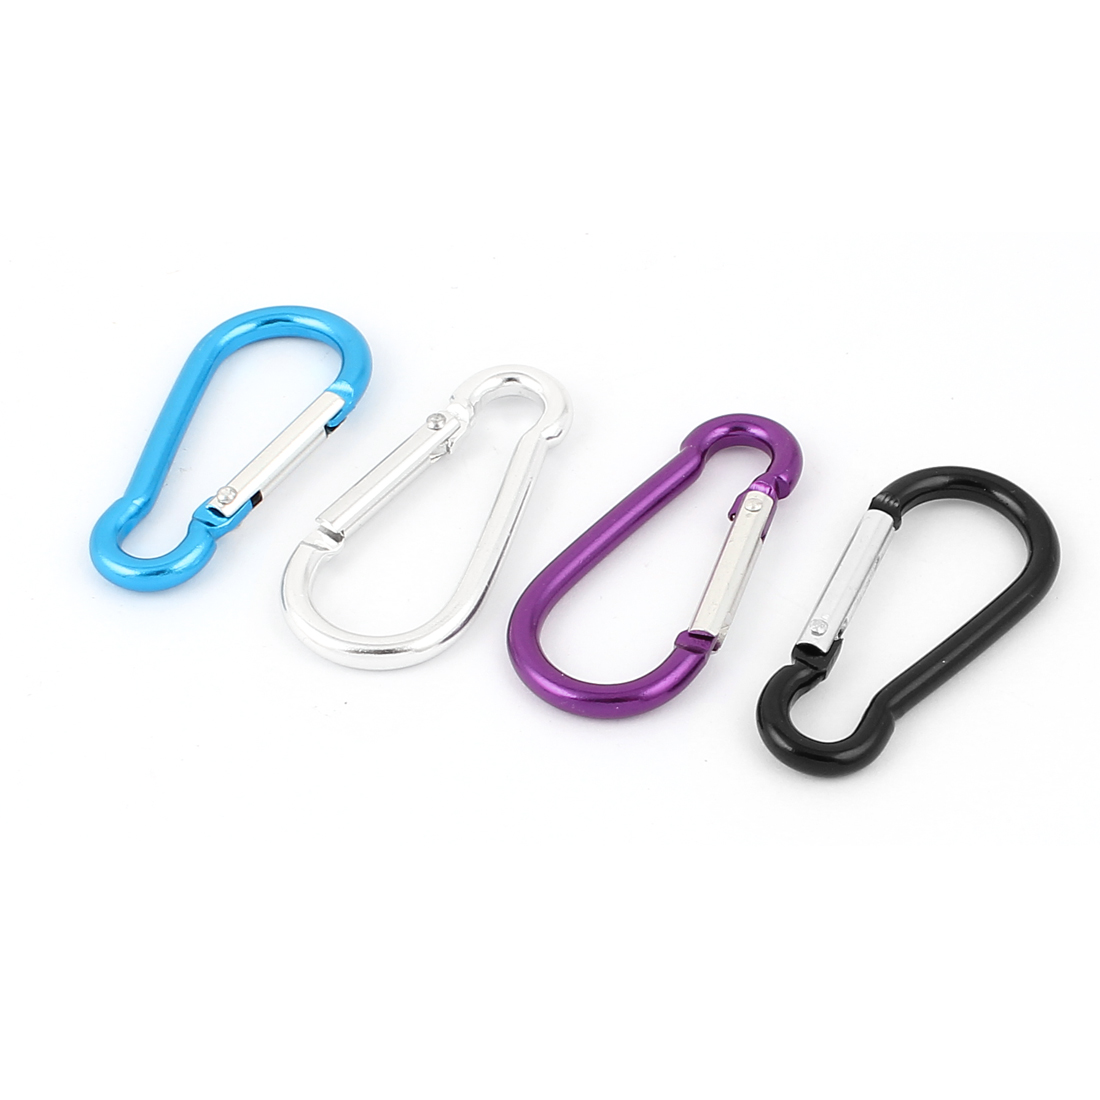 Metal D Shaped Outdoor Sport Carabiner Clip Hook Key Chain Keyring 4Pcs